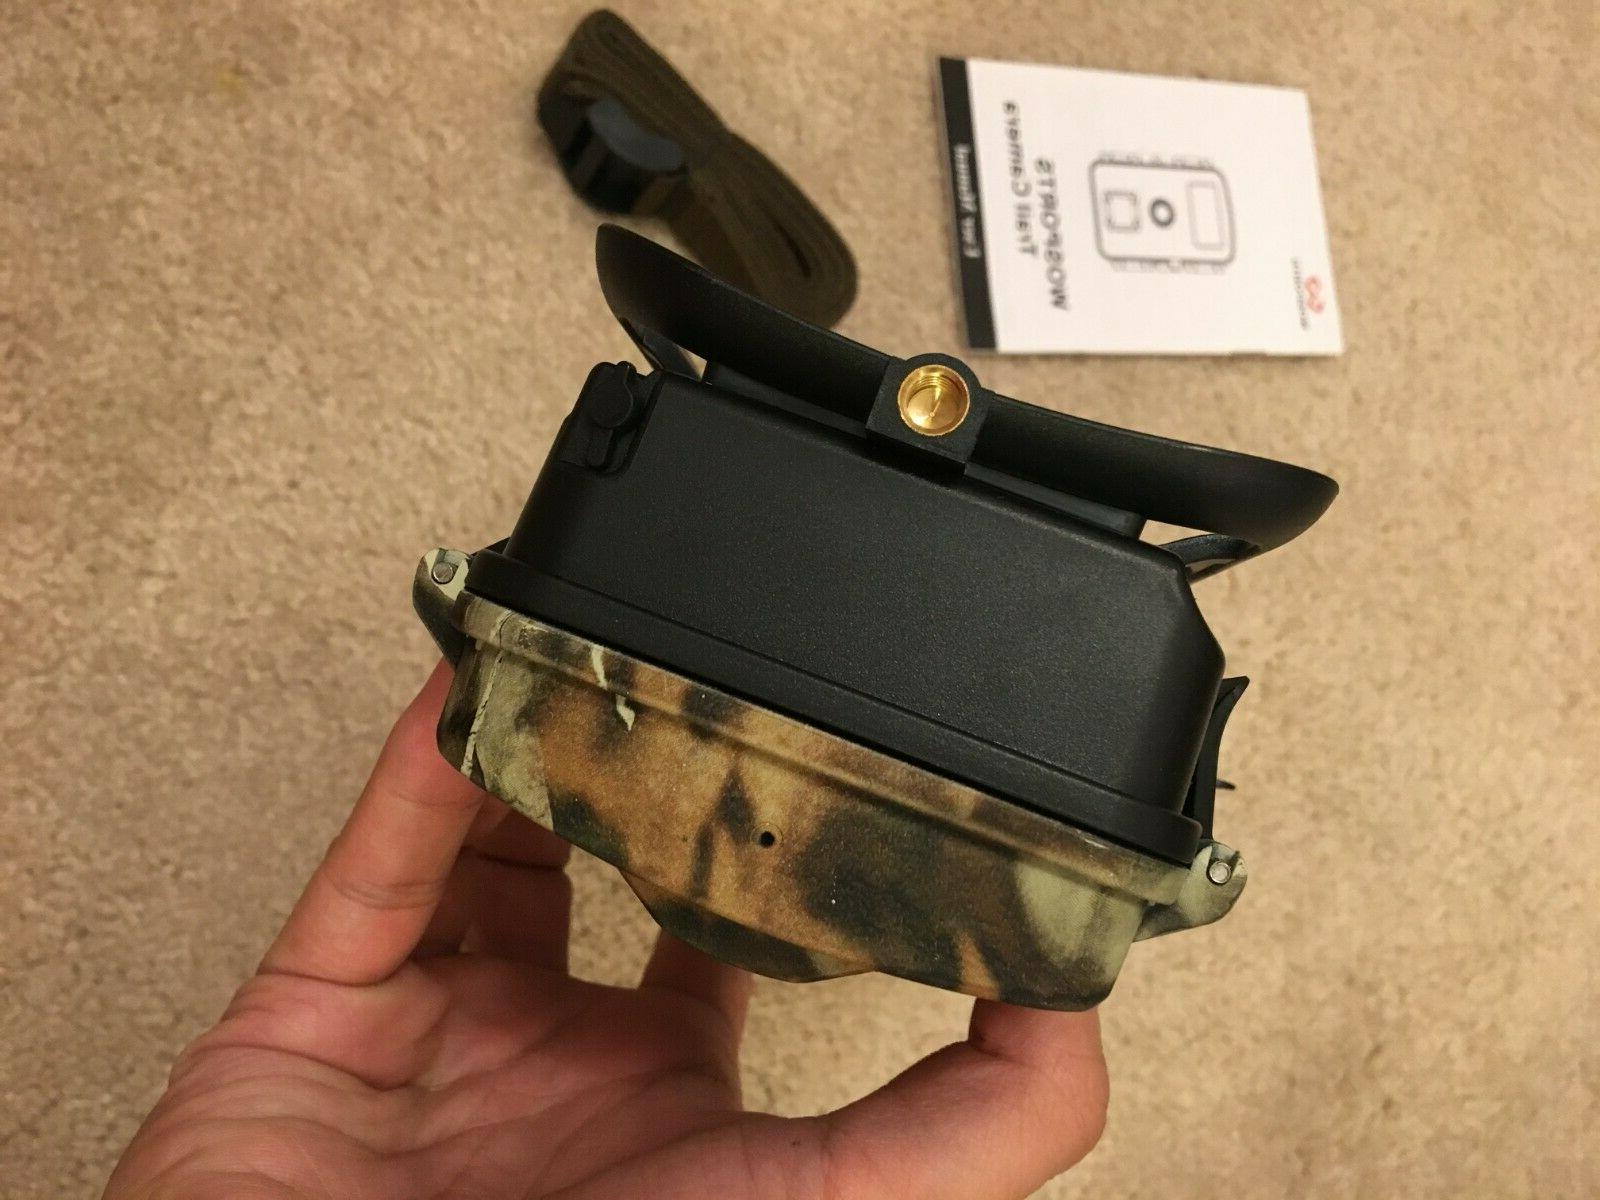 Wosports Trail Upgraded Game Camera